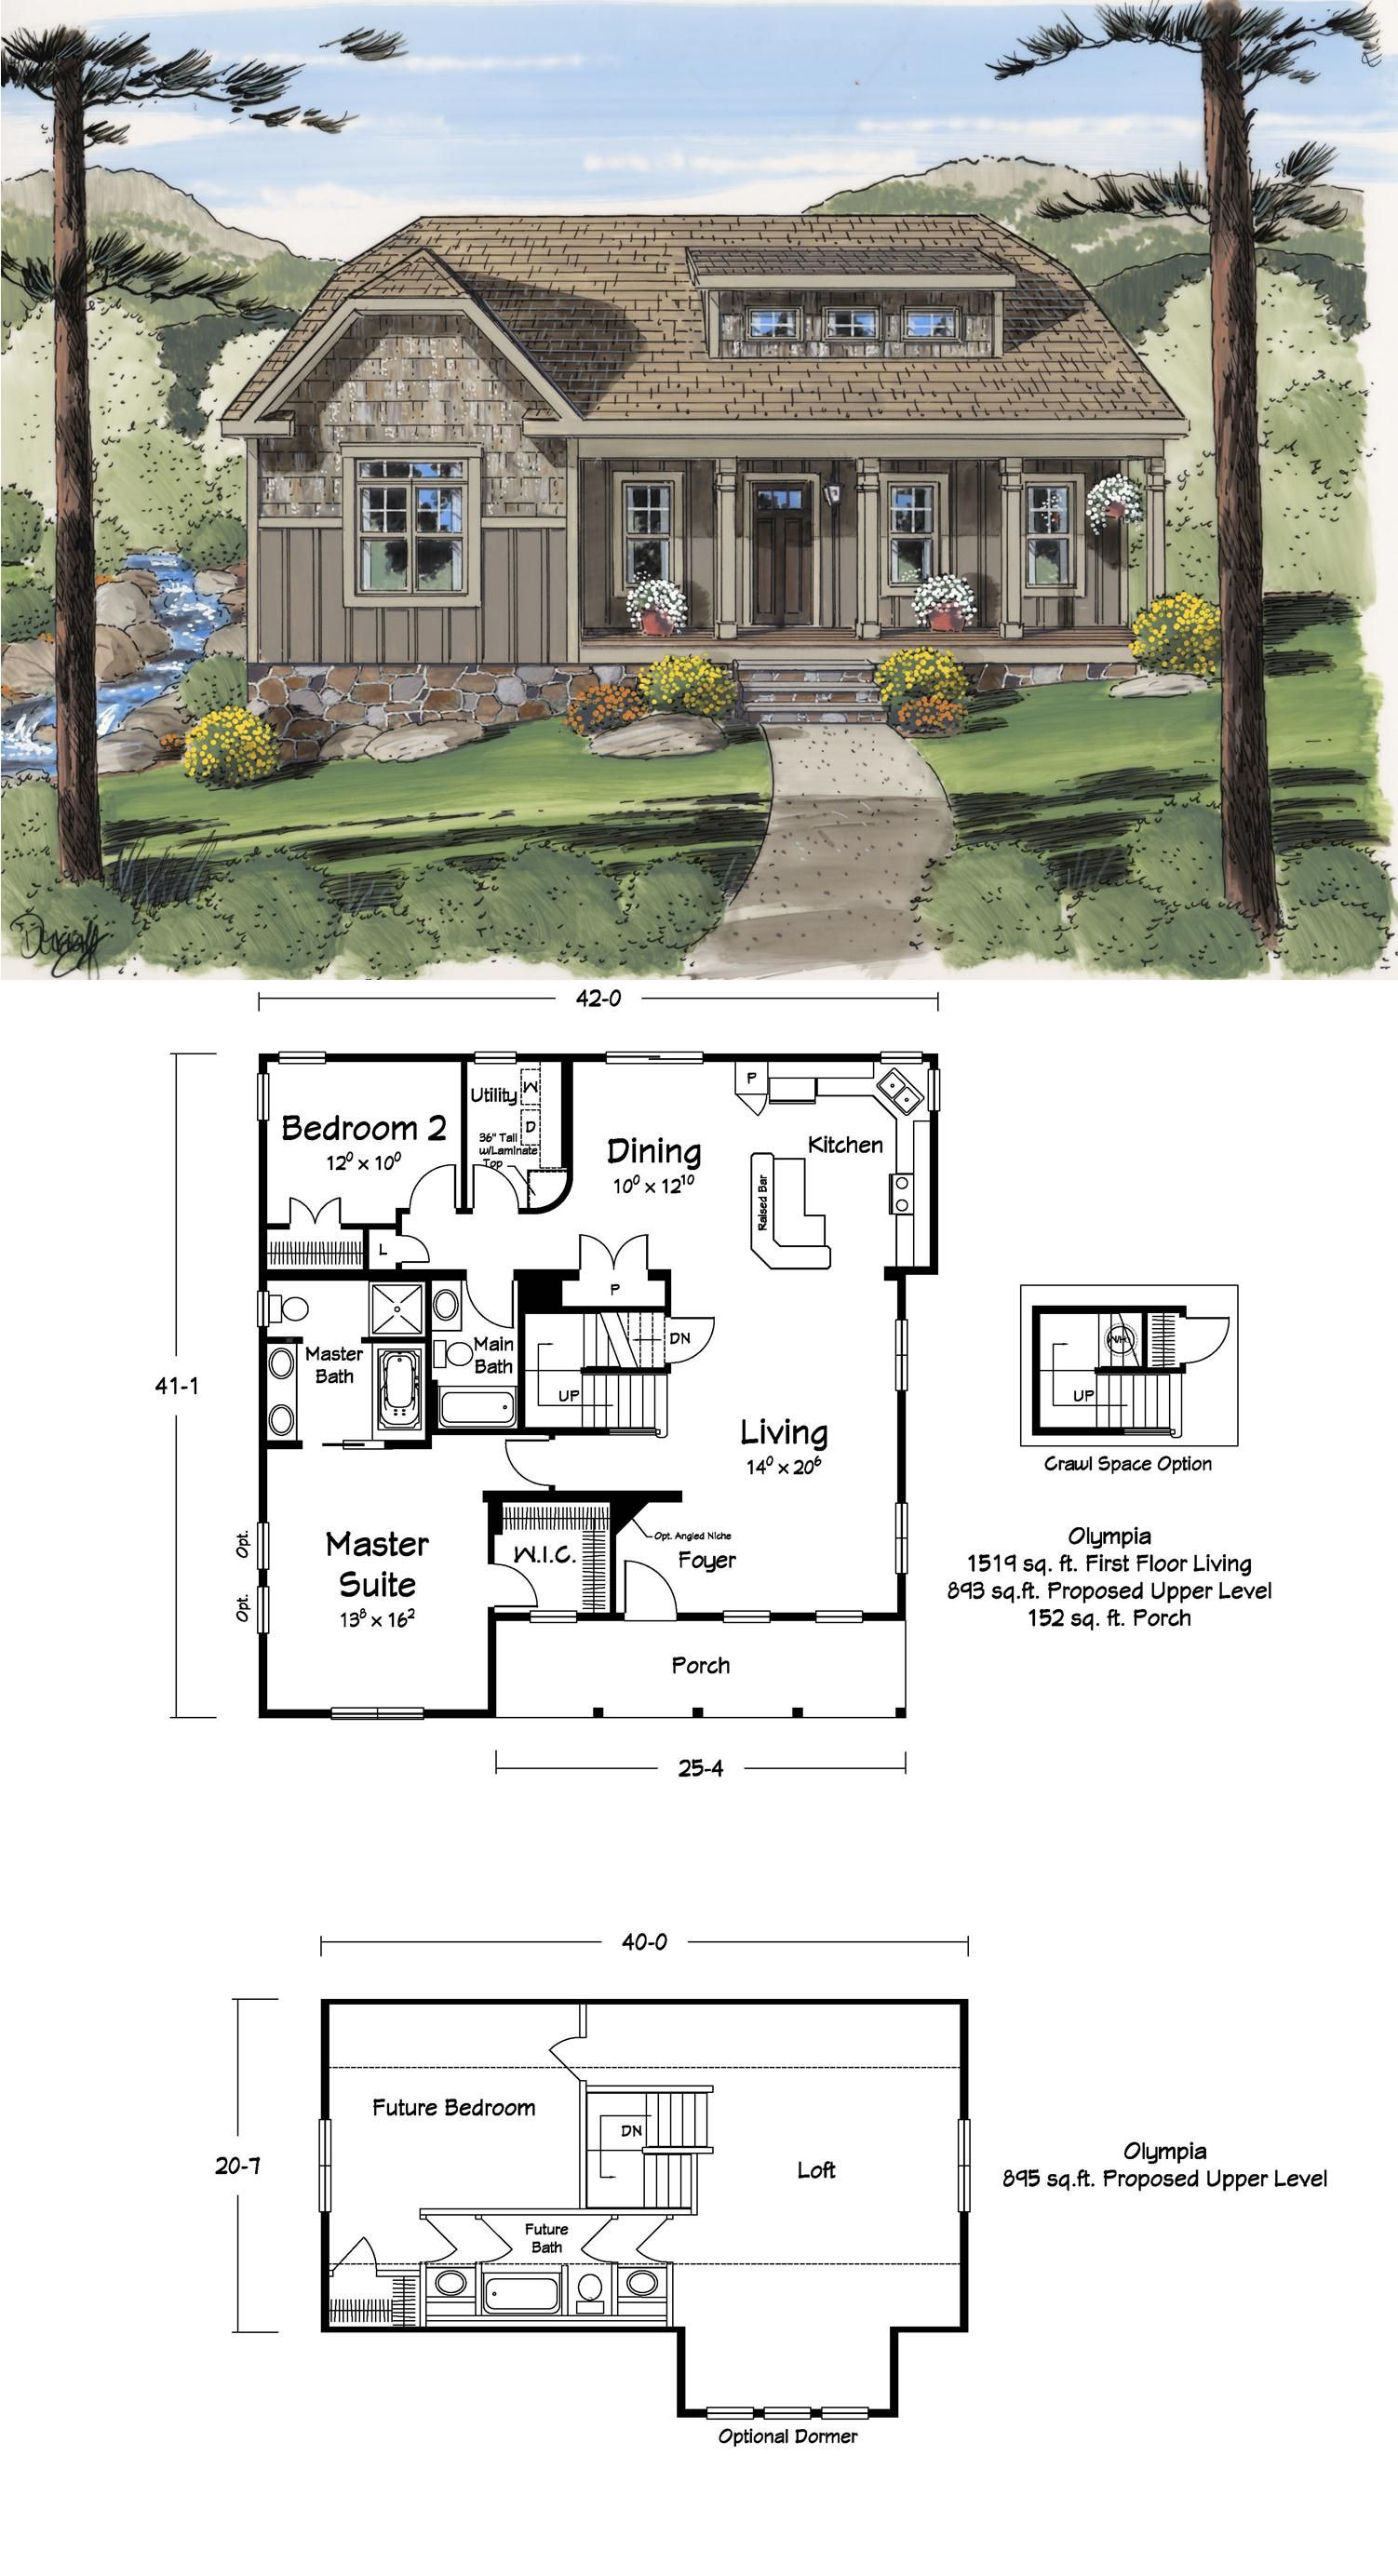 House Plans with Lofts Inspirational 111 Best House Plans Images